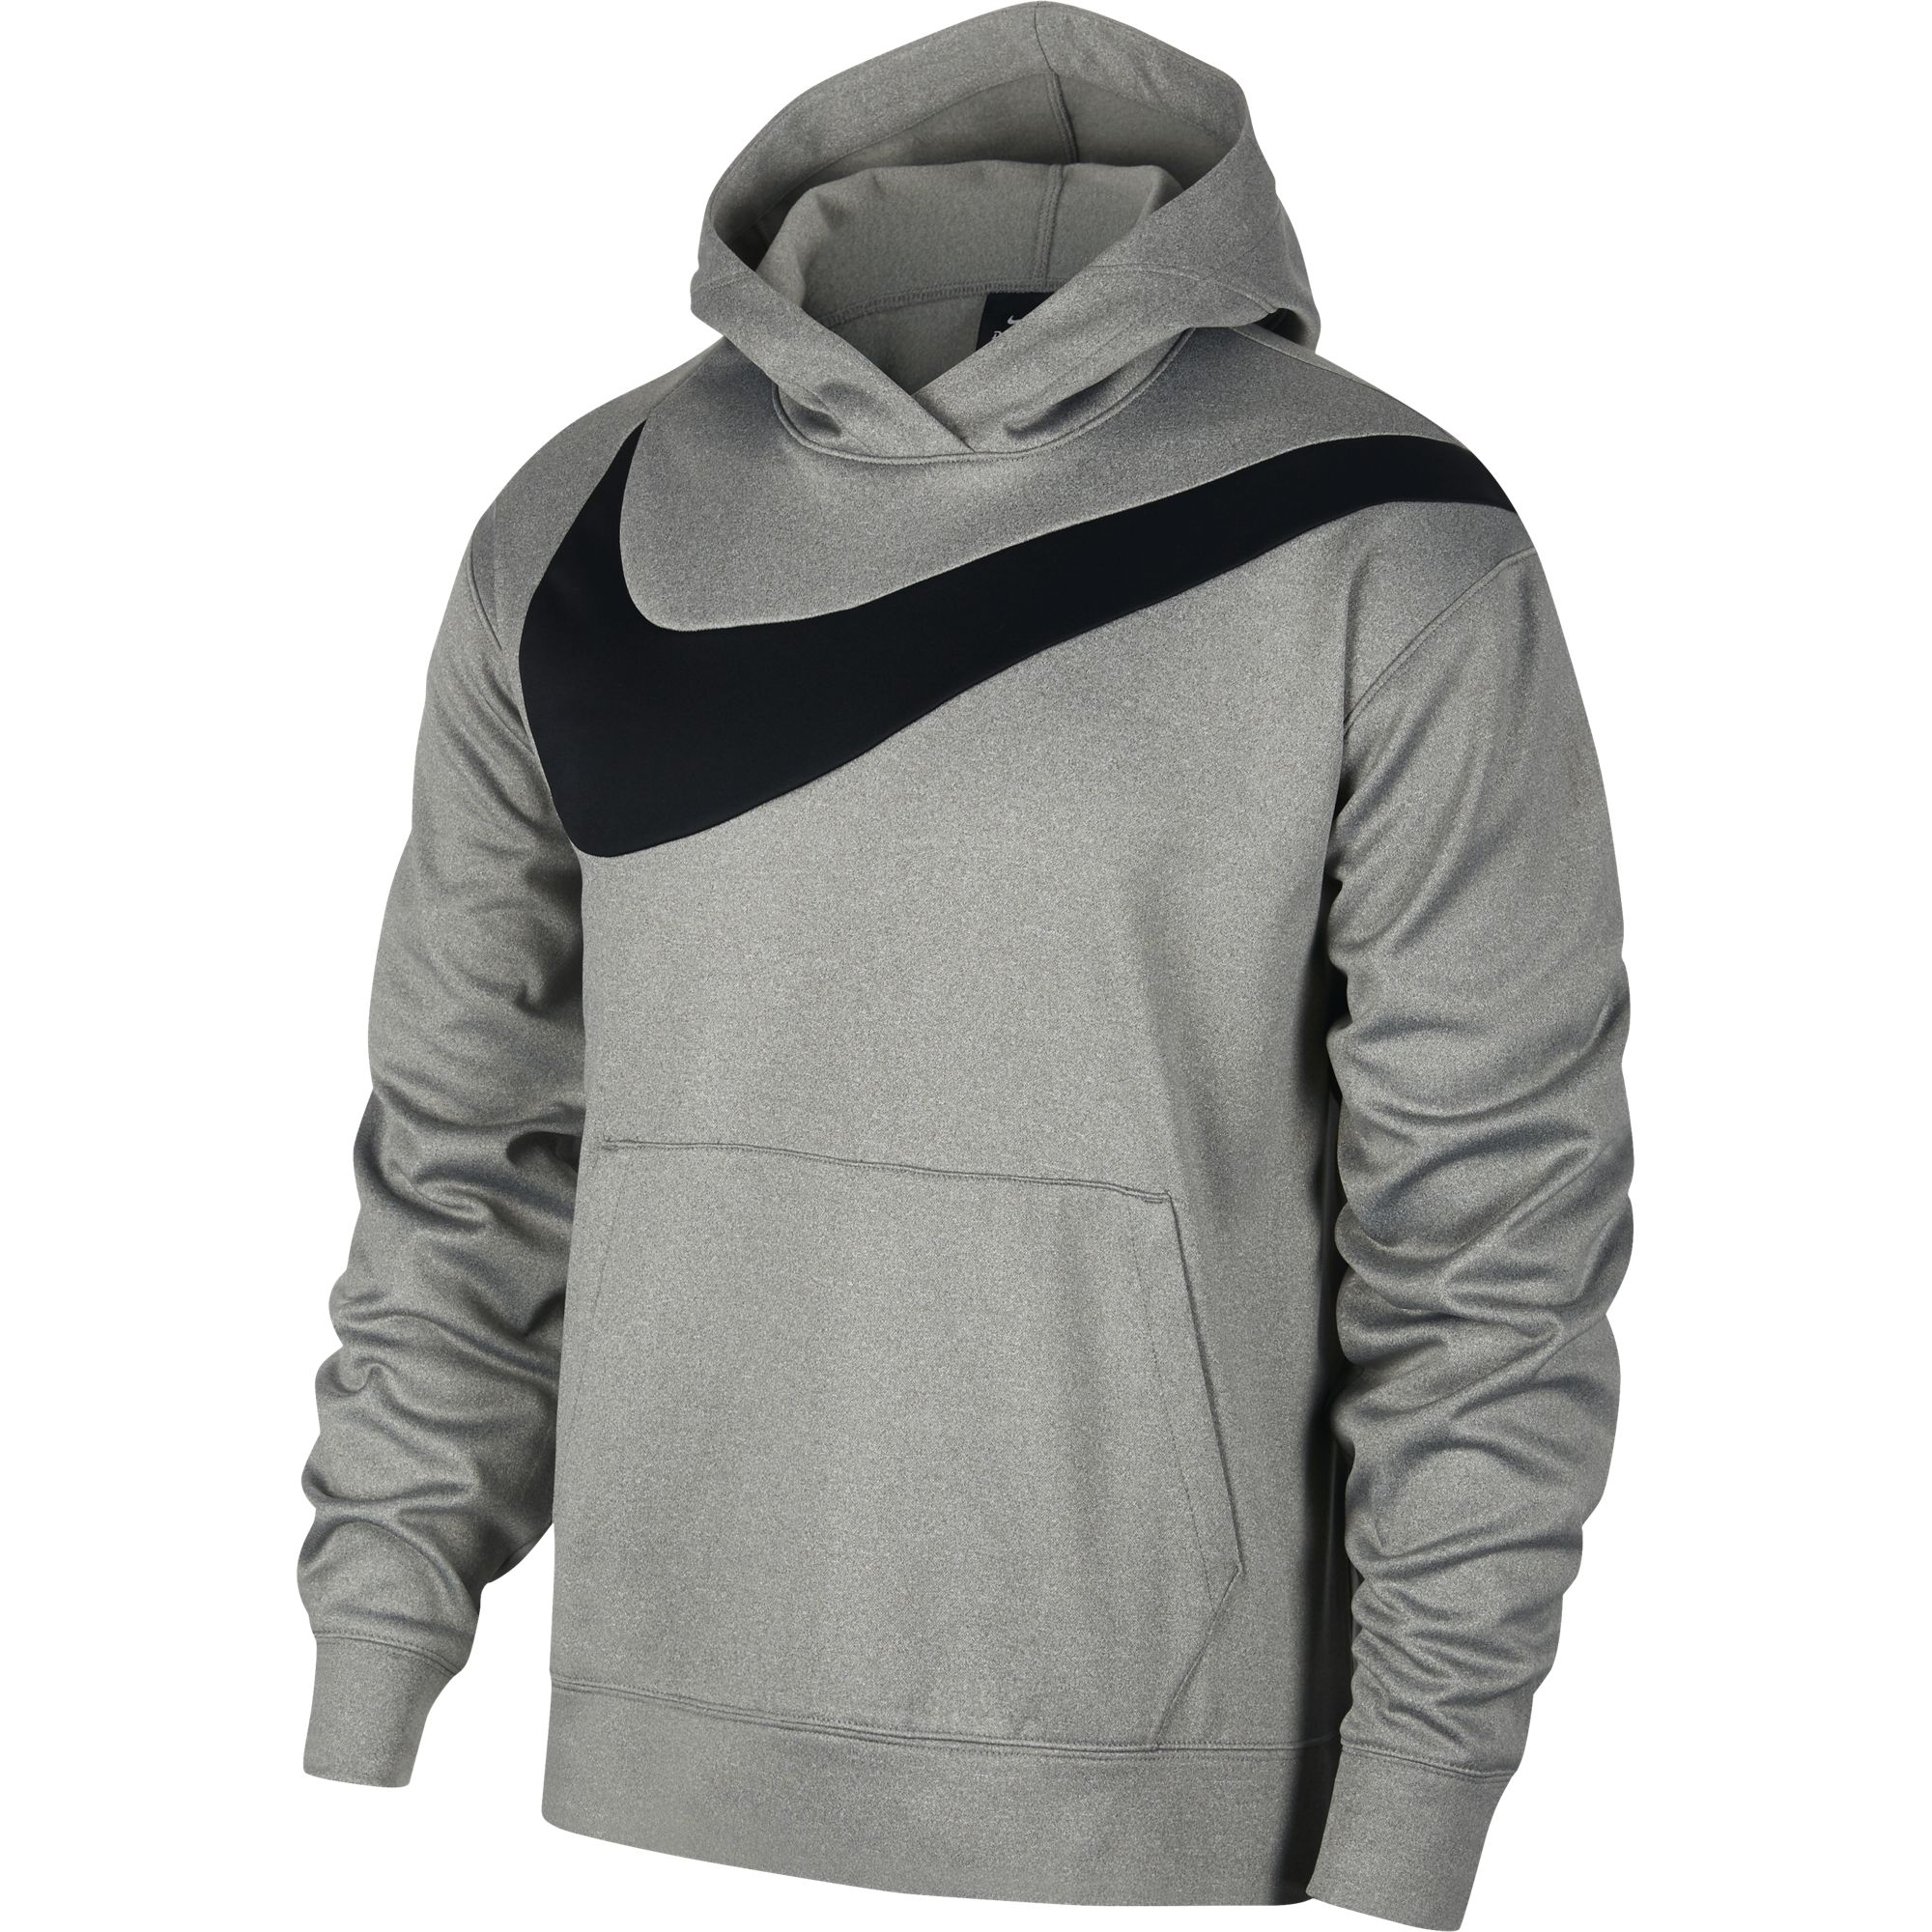 Men's Basketball Pullover Hoodie, Heather Gray, swatch